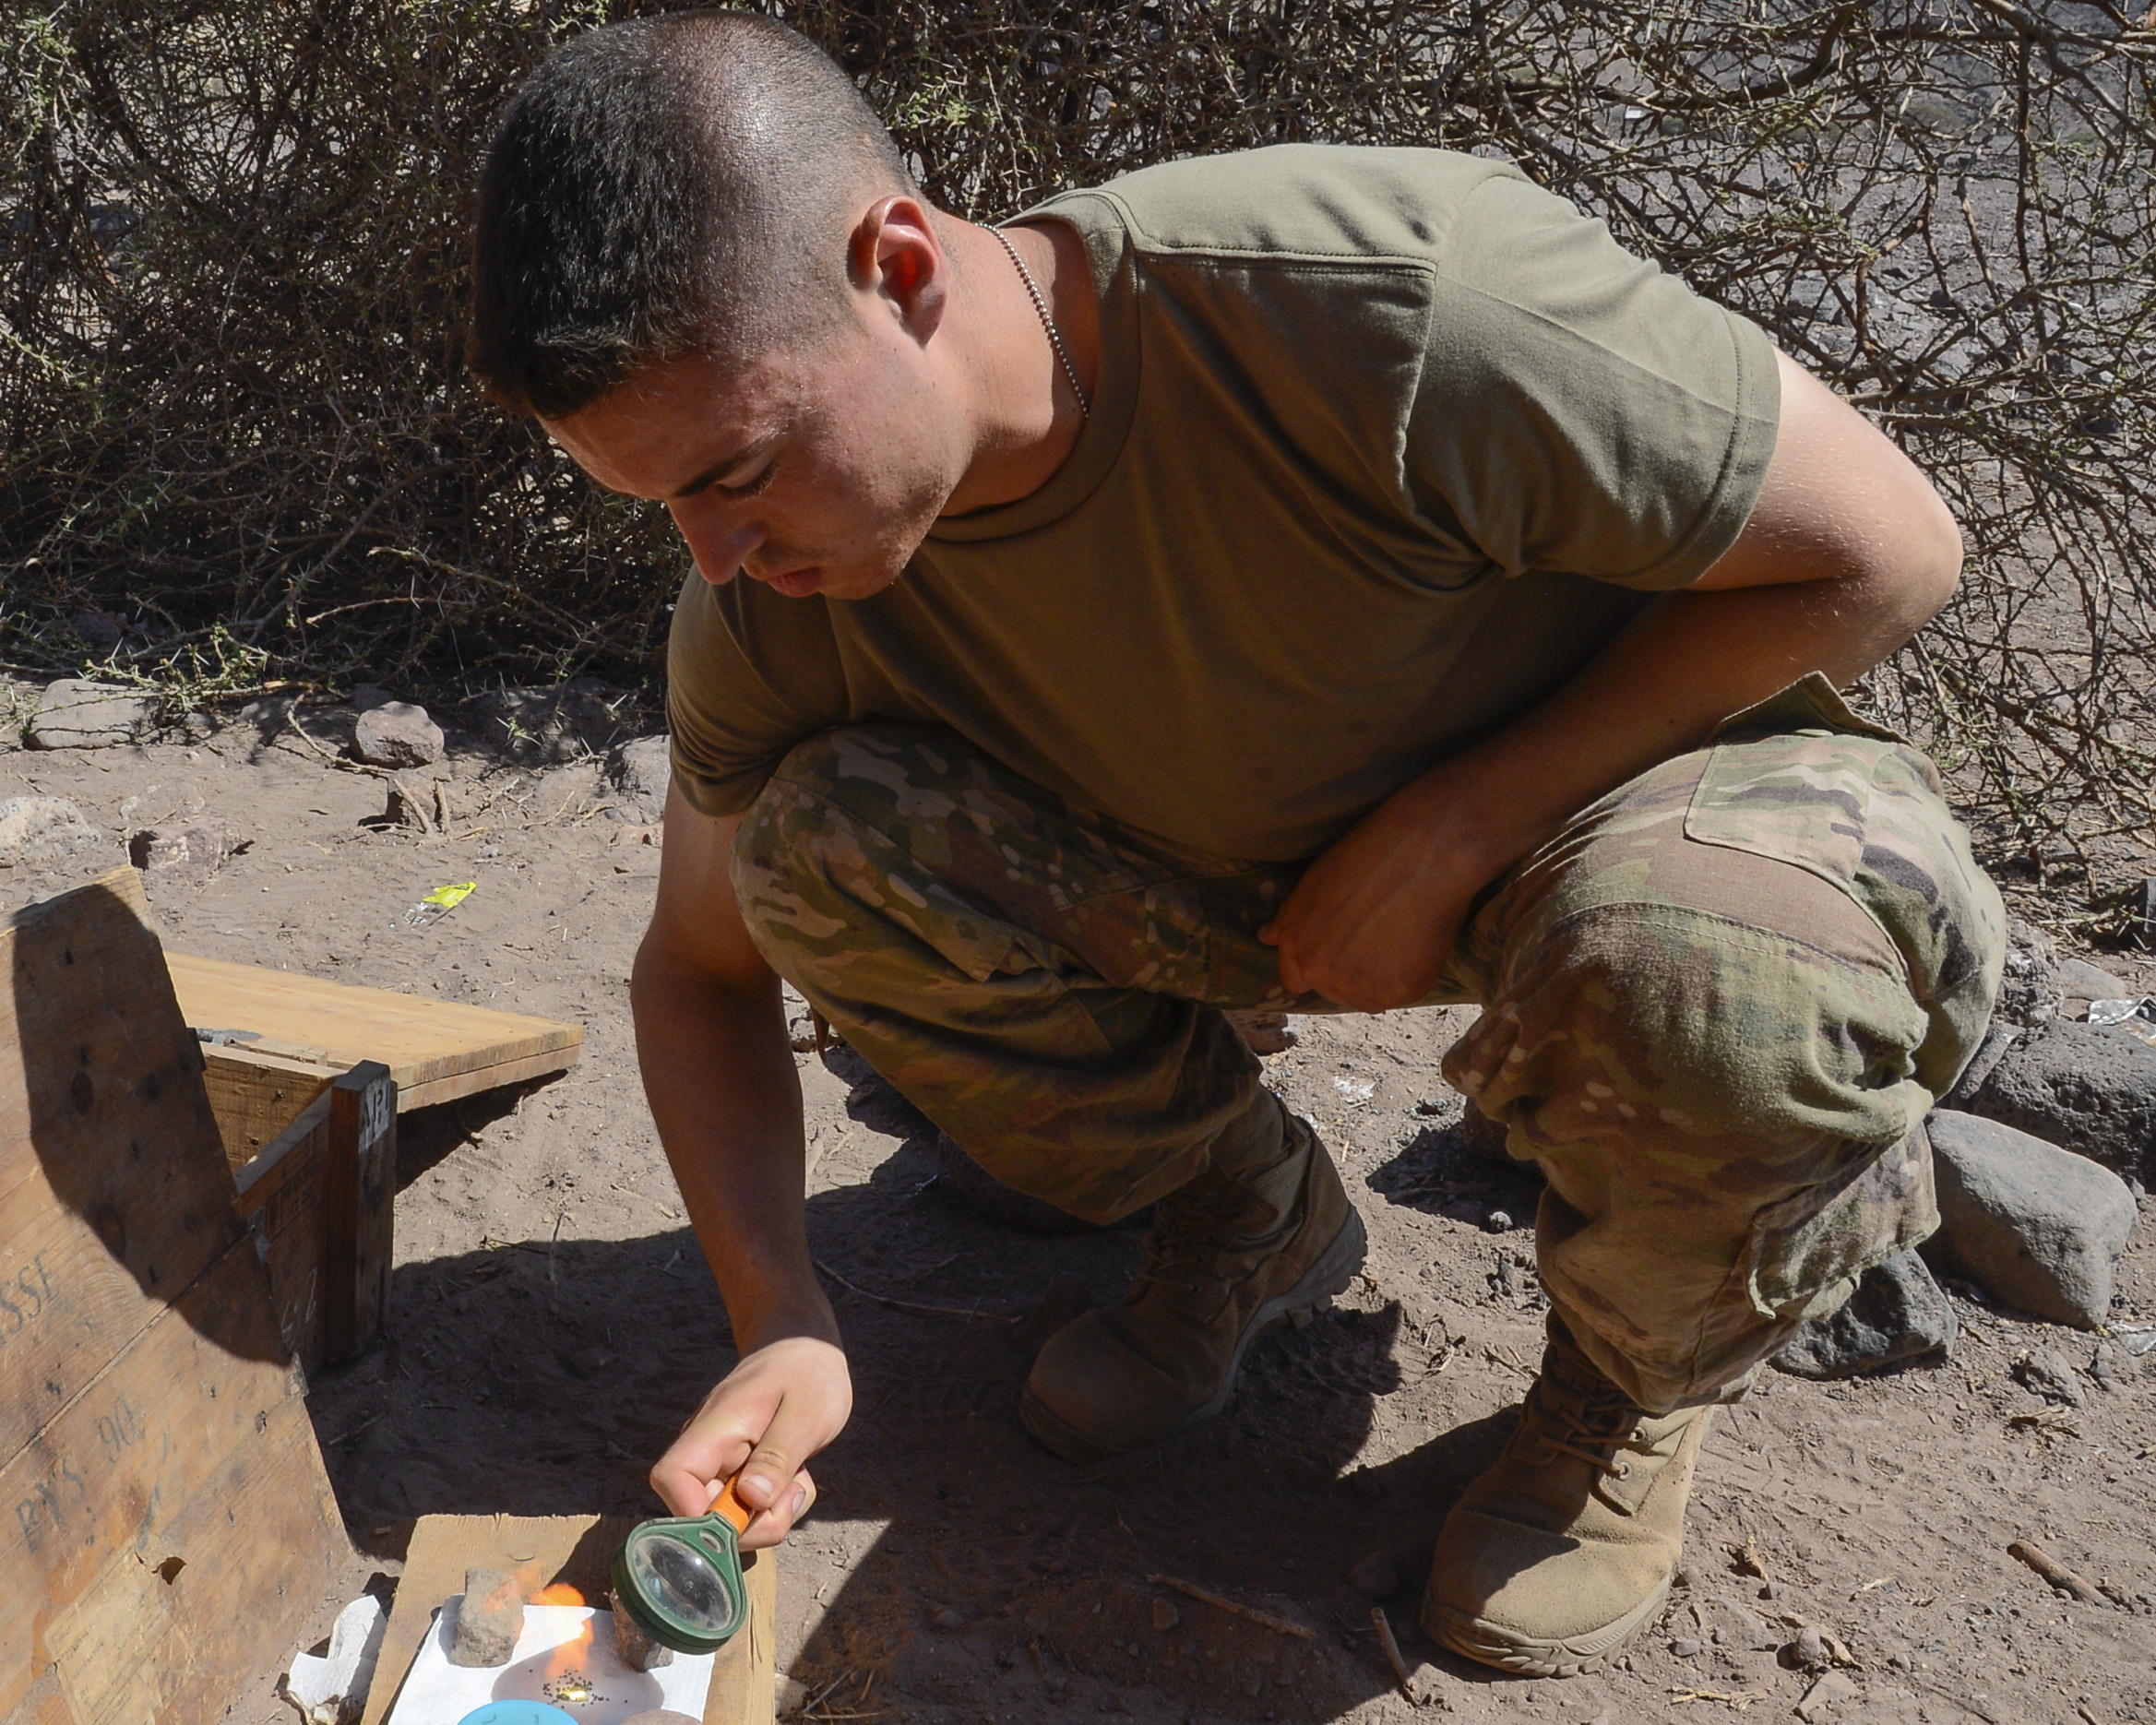 U.S. Army Pfc. Derek Gauss assigned to Alpha Company, 1st Battalion, 32nd Infantry Regiment, 1st Brigade Combat Team, 10th Mountain Division, lights a fire with a magnifying glass as part of a desert survival class during the French Desert Commando Course at the Centre Dentrainment Au Combat Djibouti in Arta Plage, Djibouti, April 21, 2018. The four-day phase is the first of two necessary to earn a coveted French Desert Commando Badge. (U.S. Navy Photo by Mass Communication Specialist 2nd Class Timothy M. Ahearn)